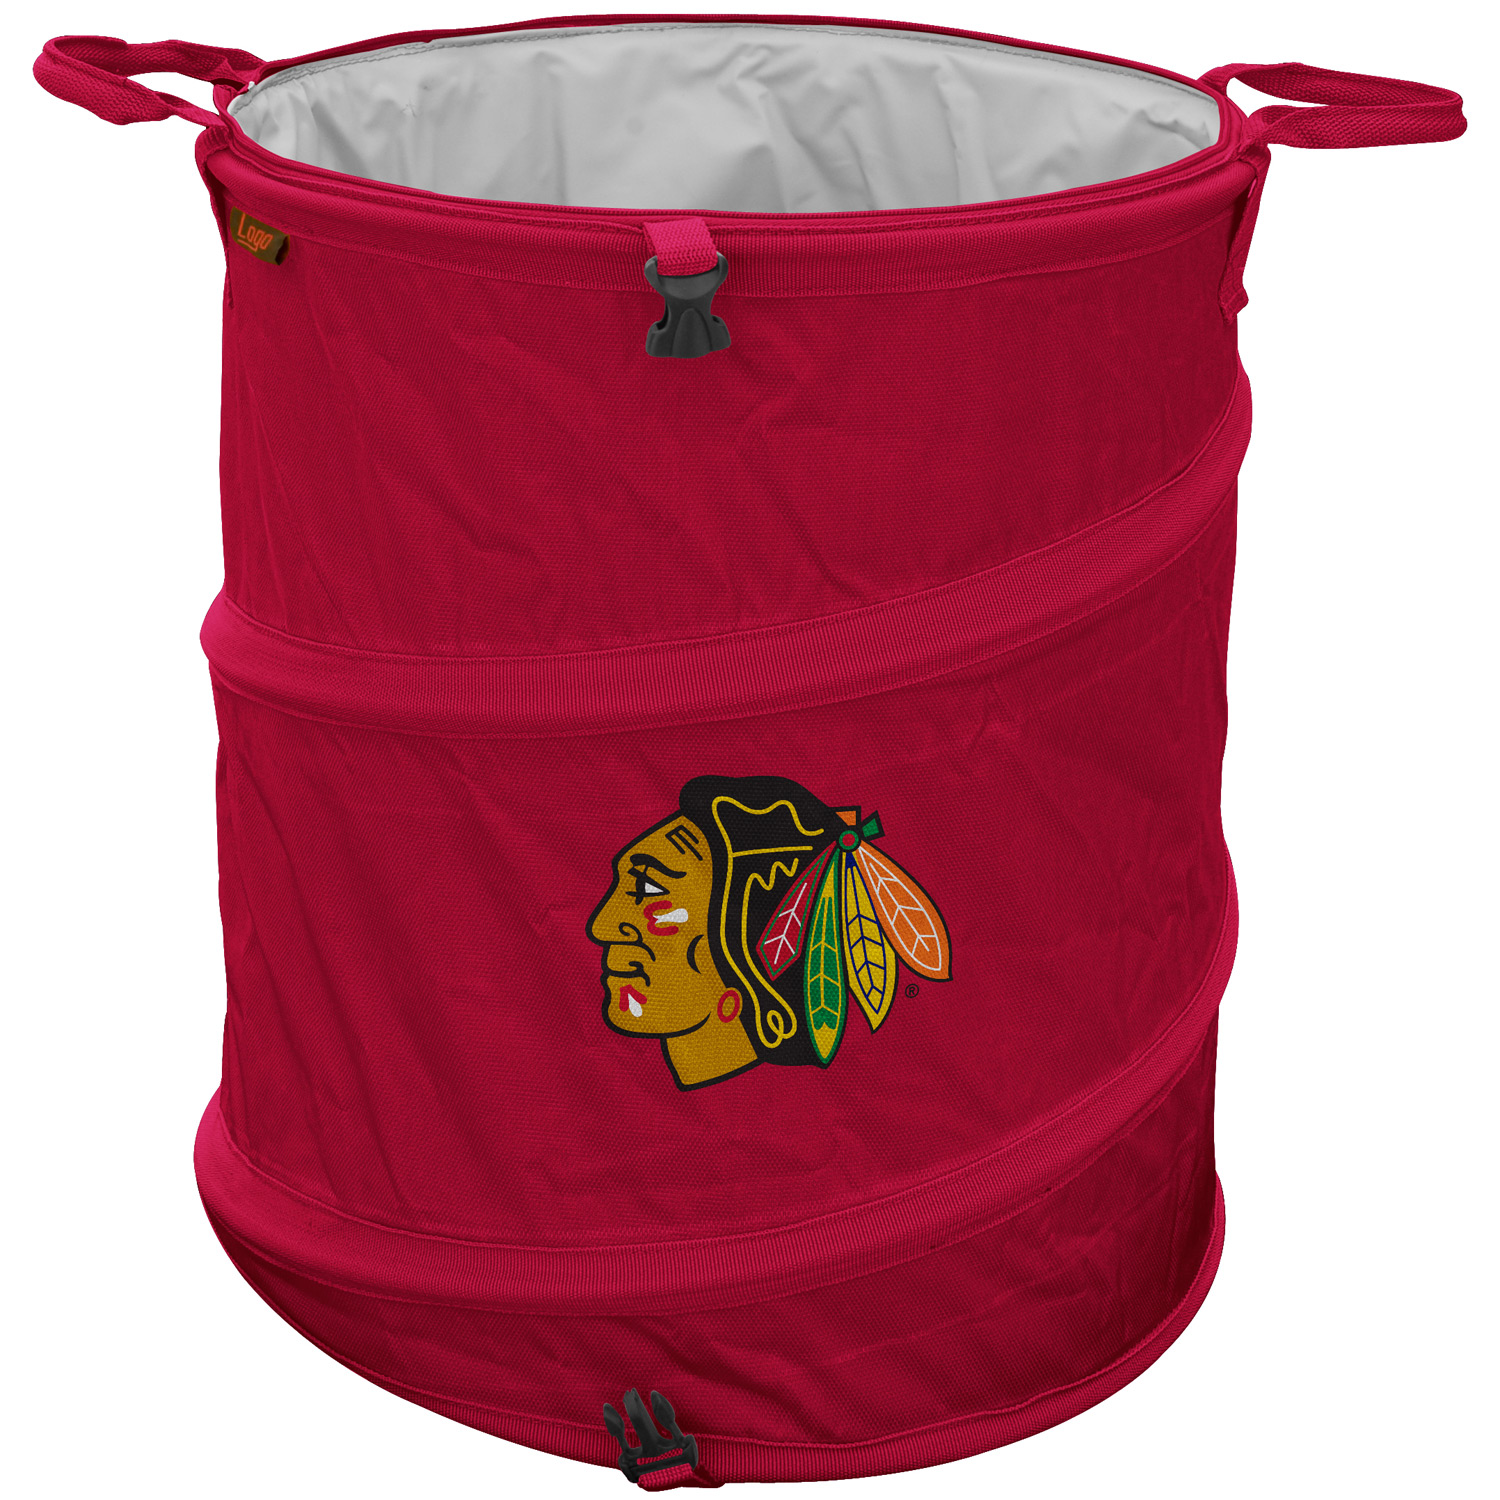 Logo Chair Chicago Blackhawks Collapsible 3-in-1 Cooler